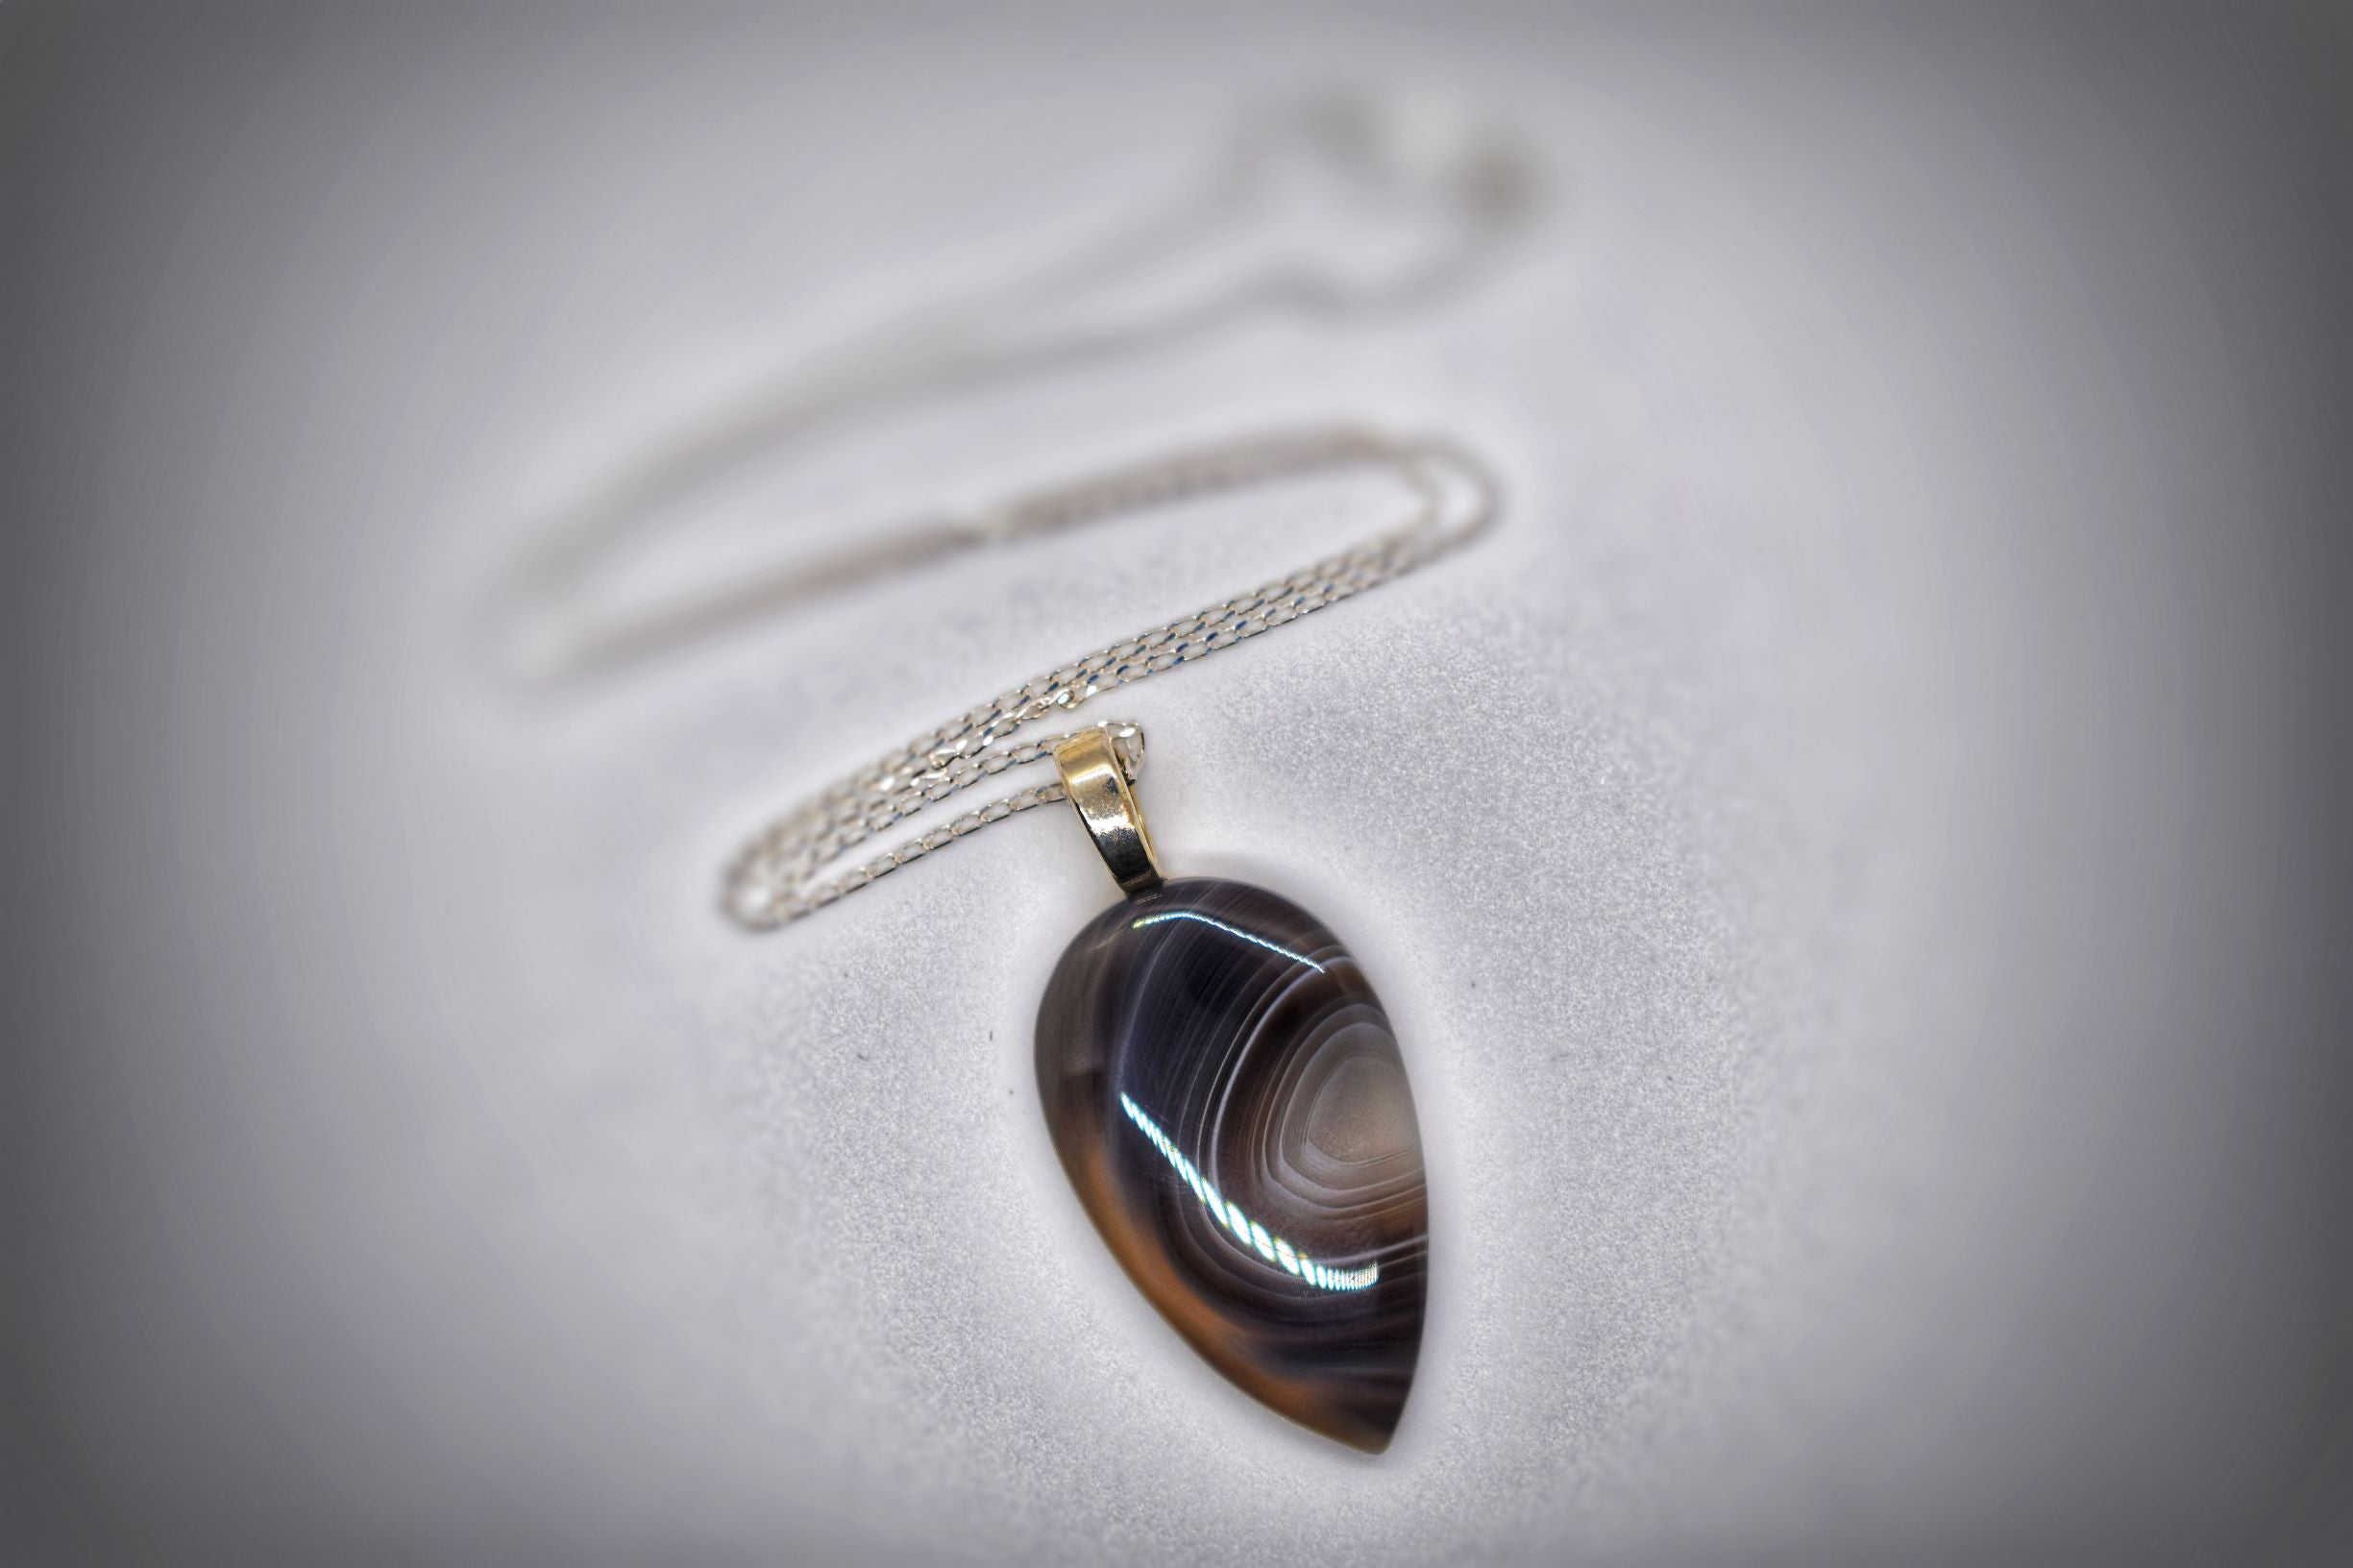 Botswana Agate Pendant Necklace